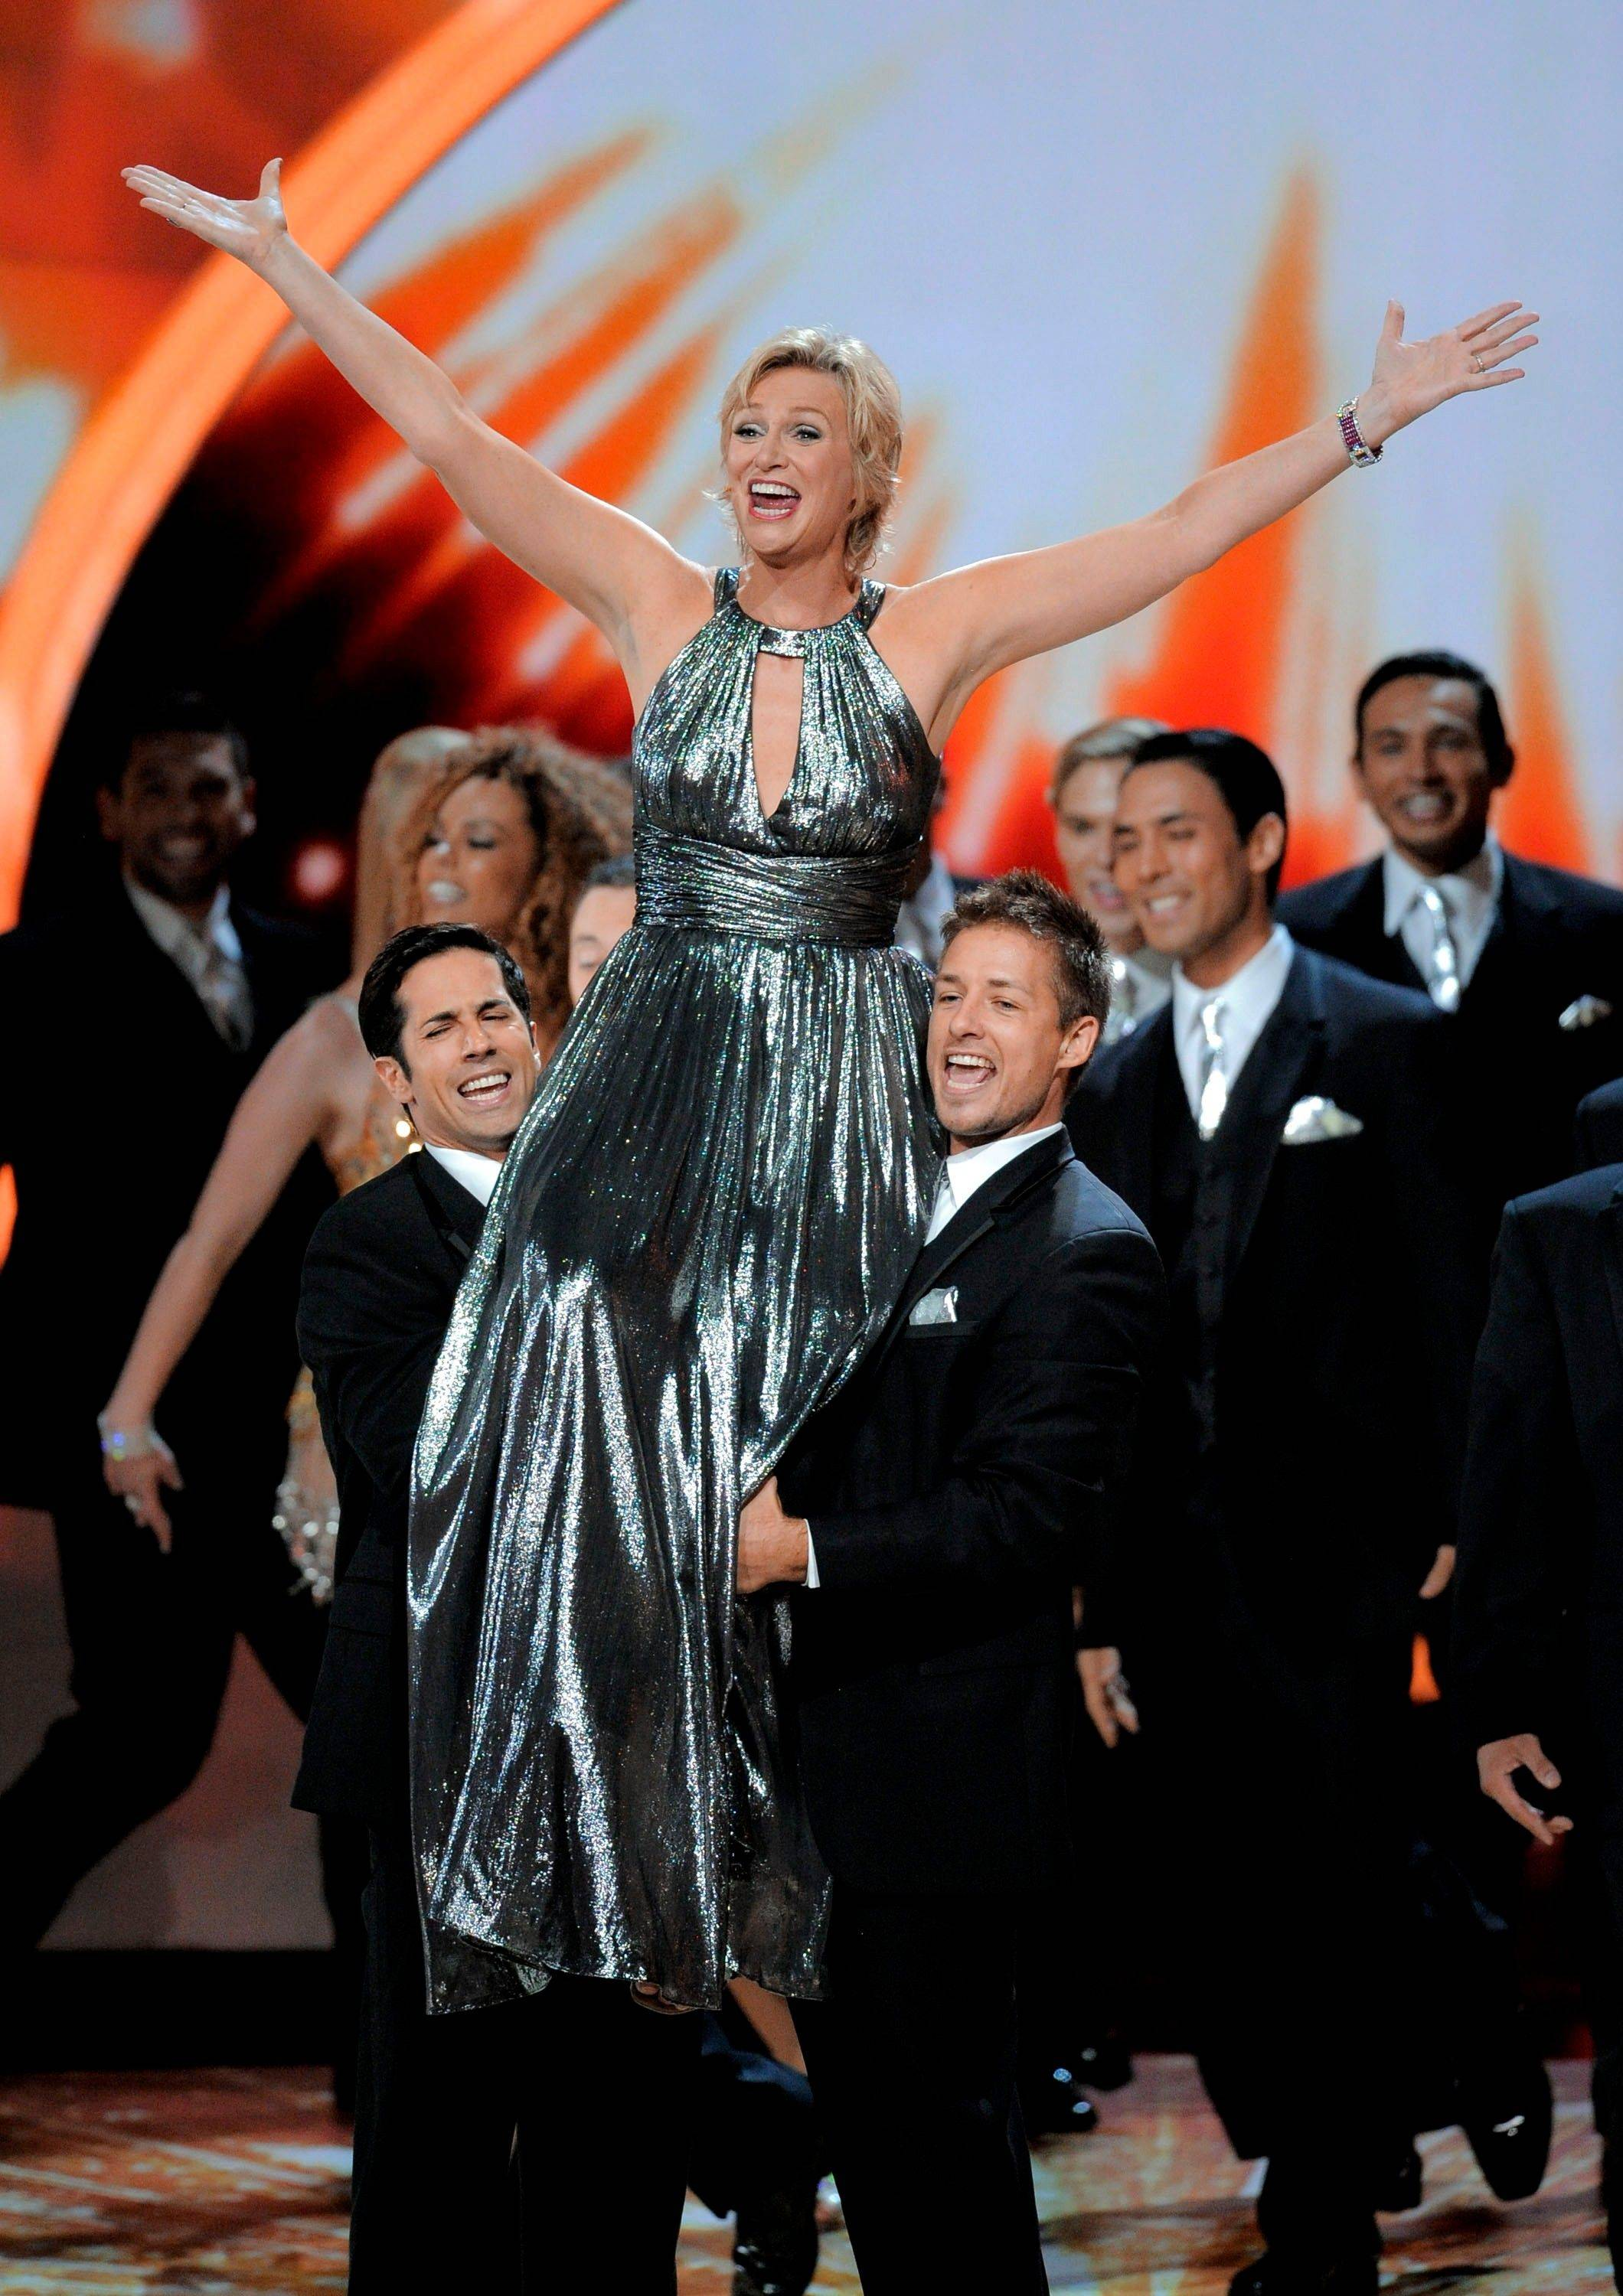 """Glee"" star and Emmy host Jane Lynch kicks off the show at the 63rd Primetime Emmy Awards on Sunday in Los Angeles."